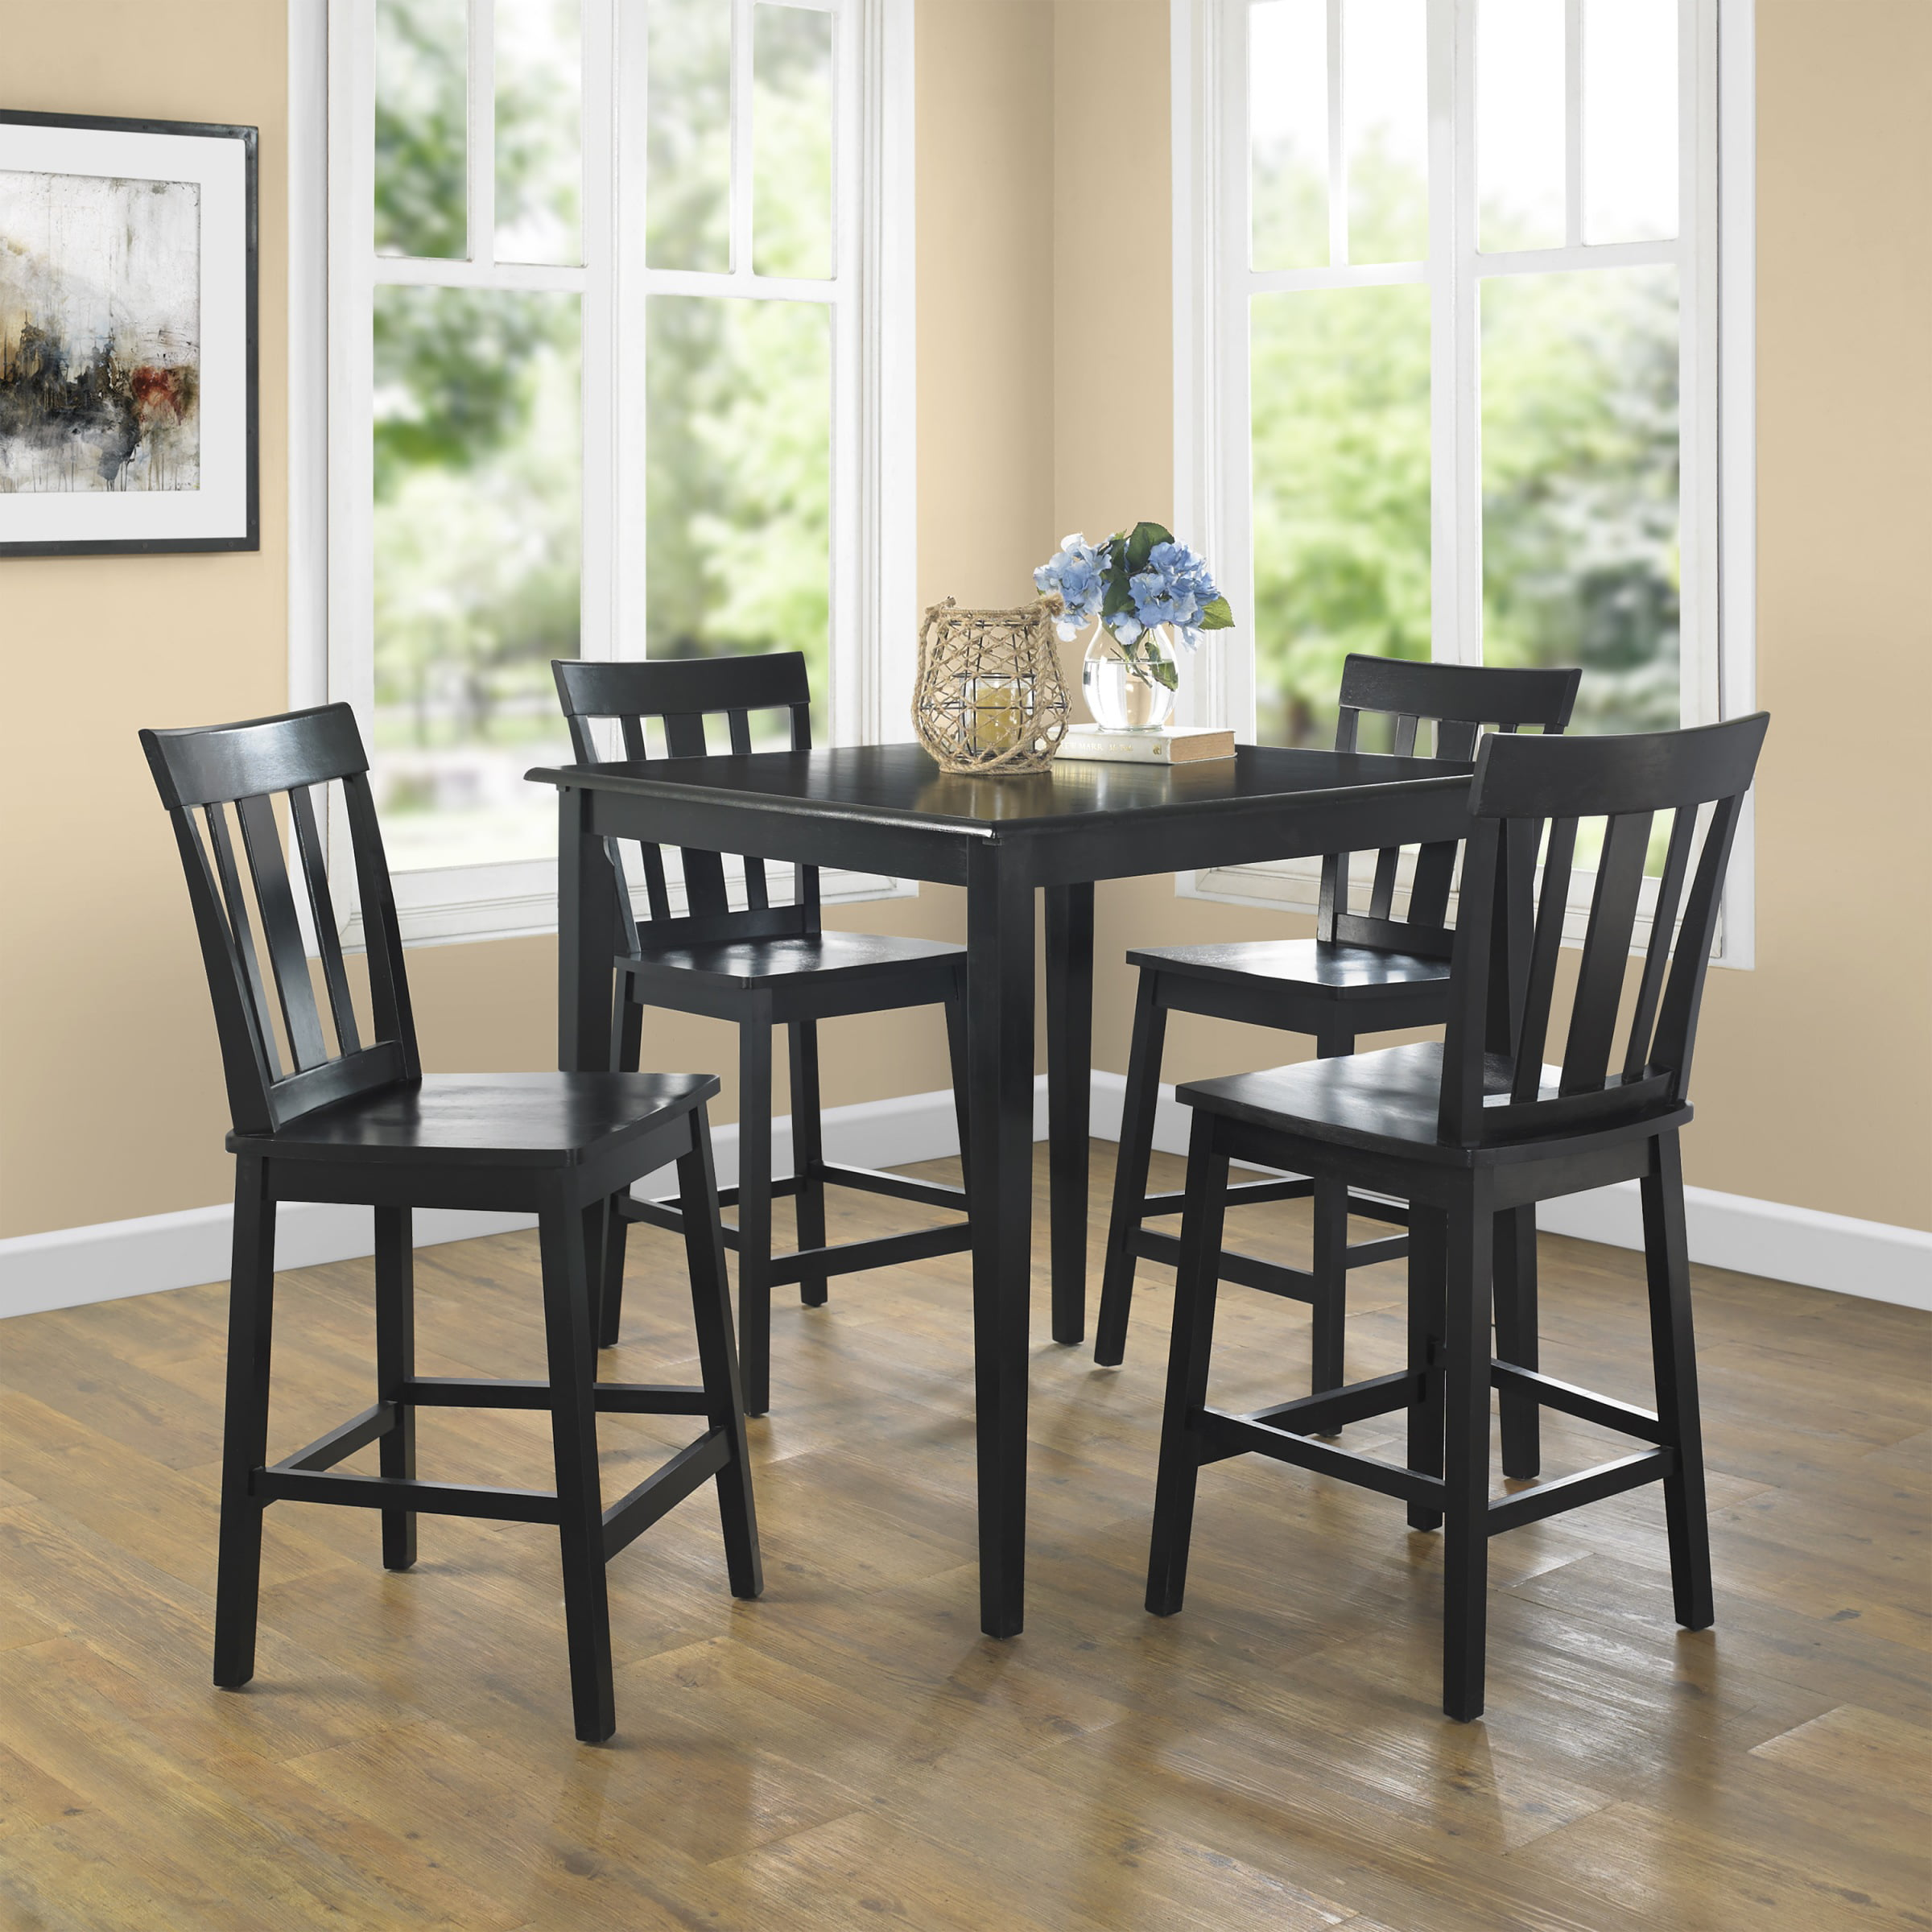 Mainstays 5 Piece Dining Set Black Walmart Com Walmart Com